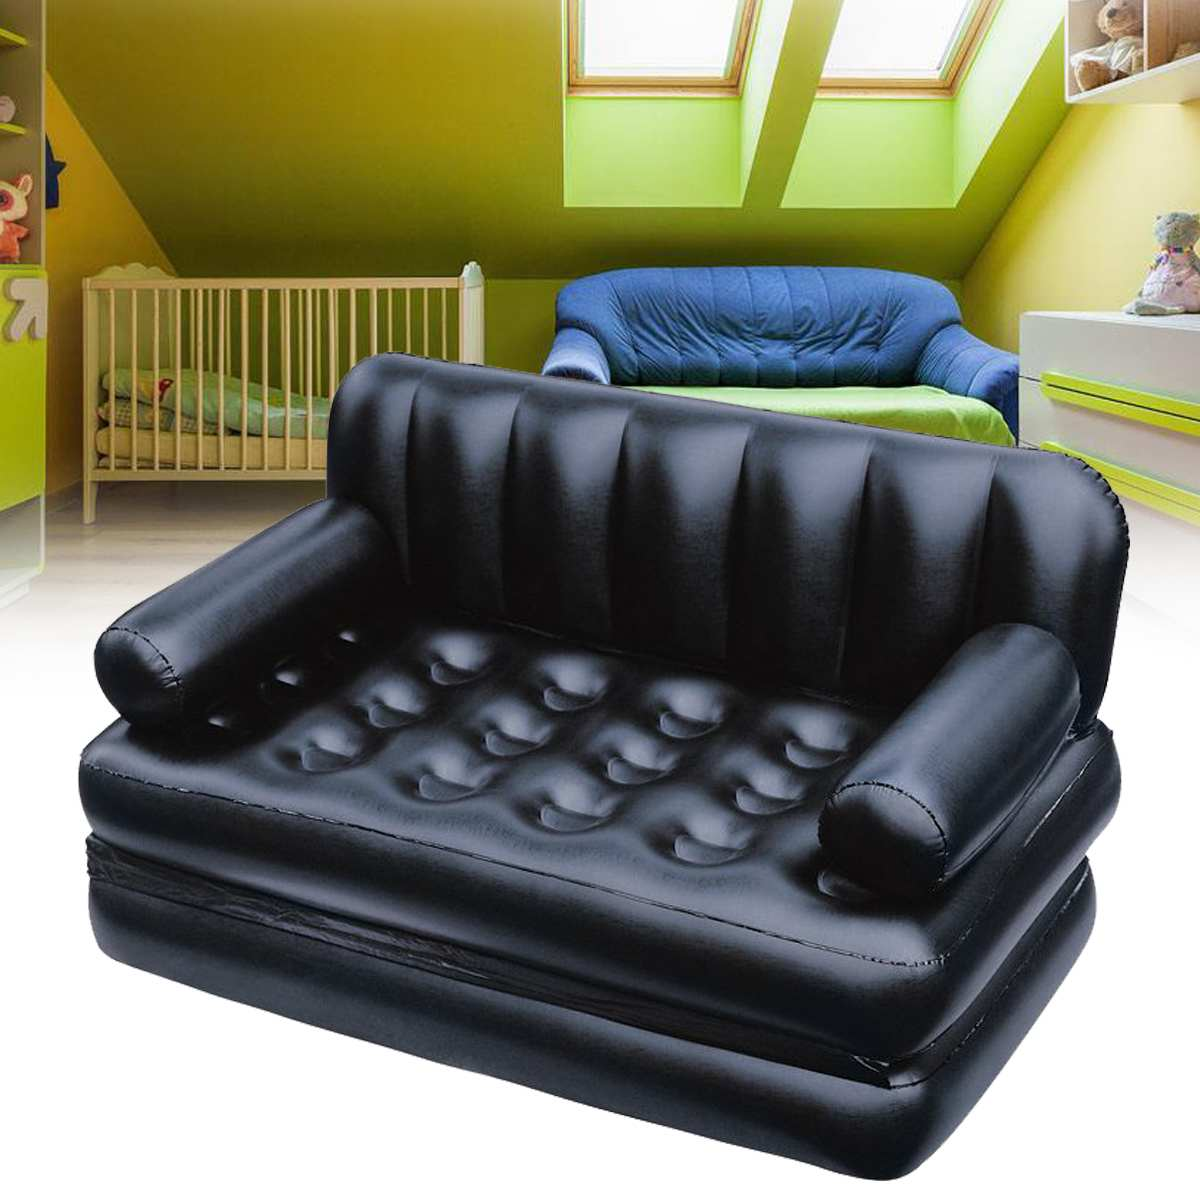 Outdoor Furniture Inflatable Garden Sofa Lounge Blow Up